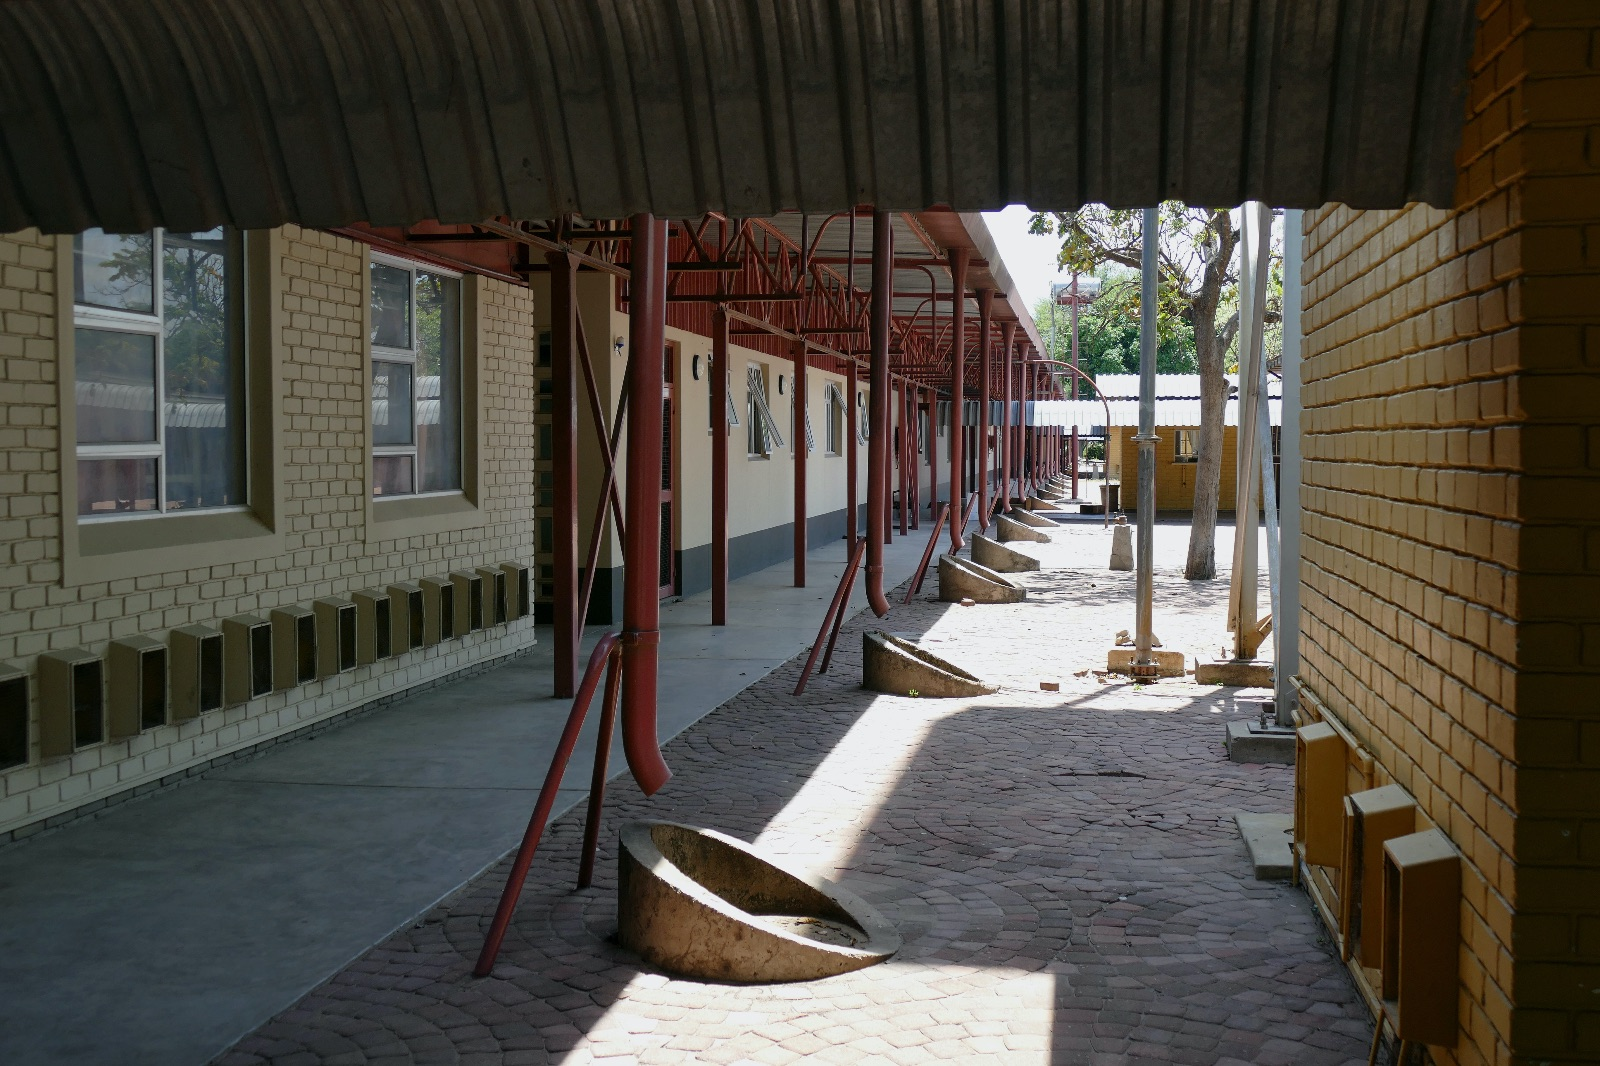 27 - Katima Hospital Ward courtyard.jpg